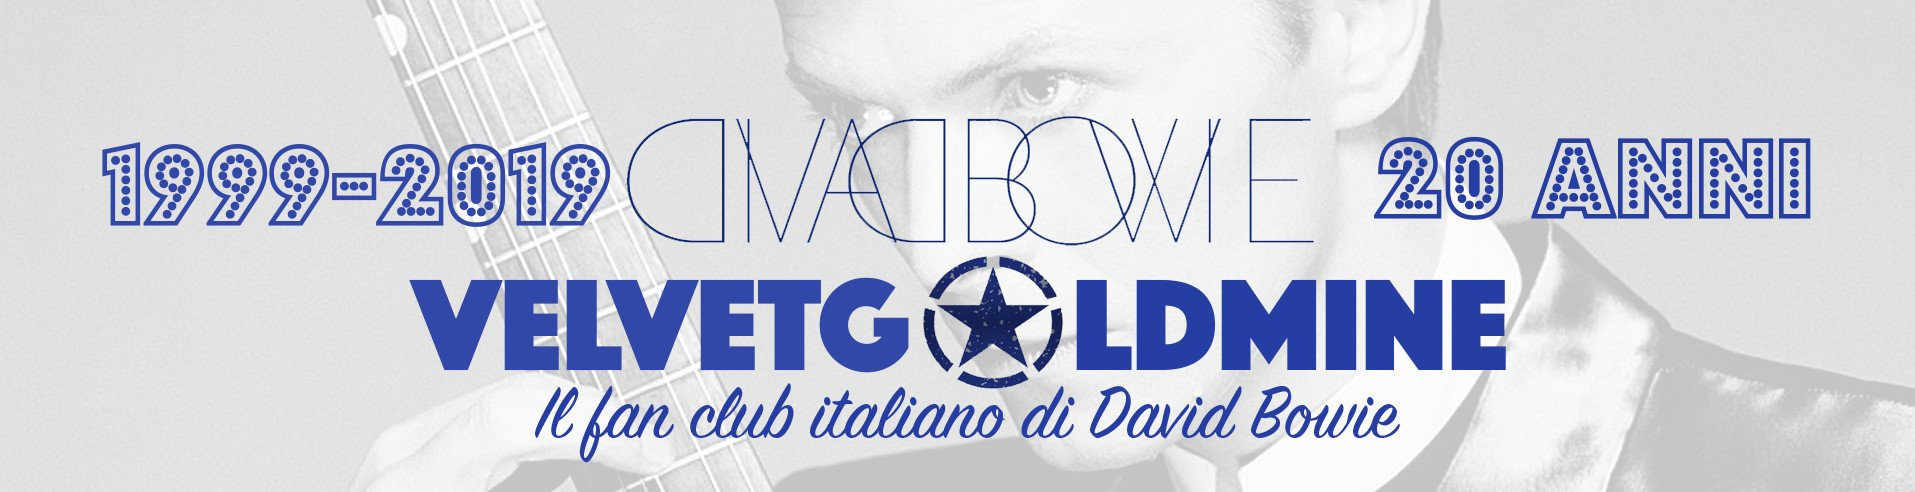 David Bowie Italia | Velvetgoldmine.it